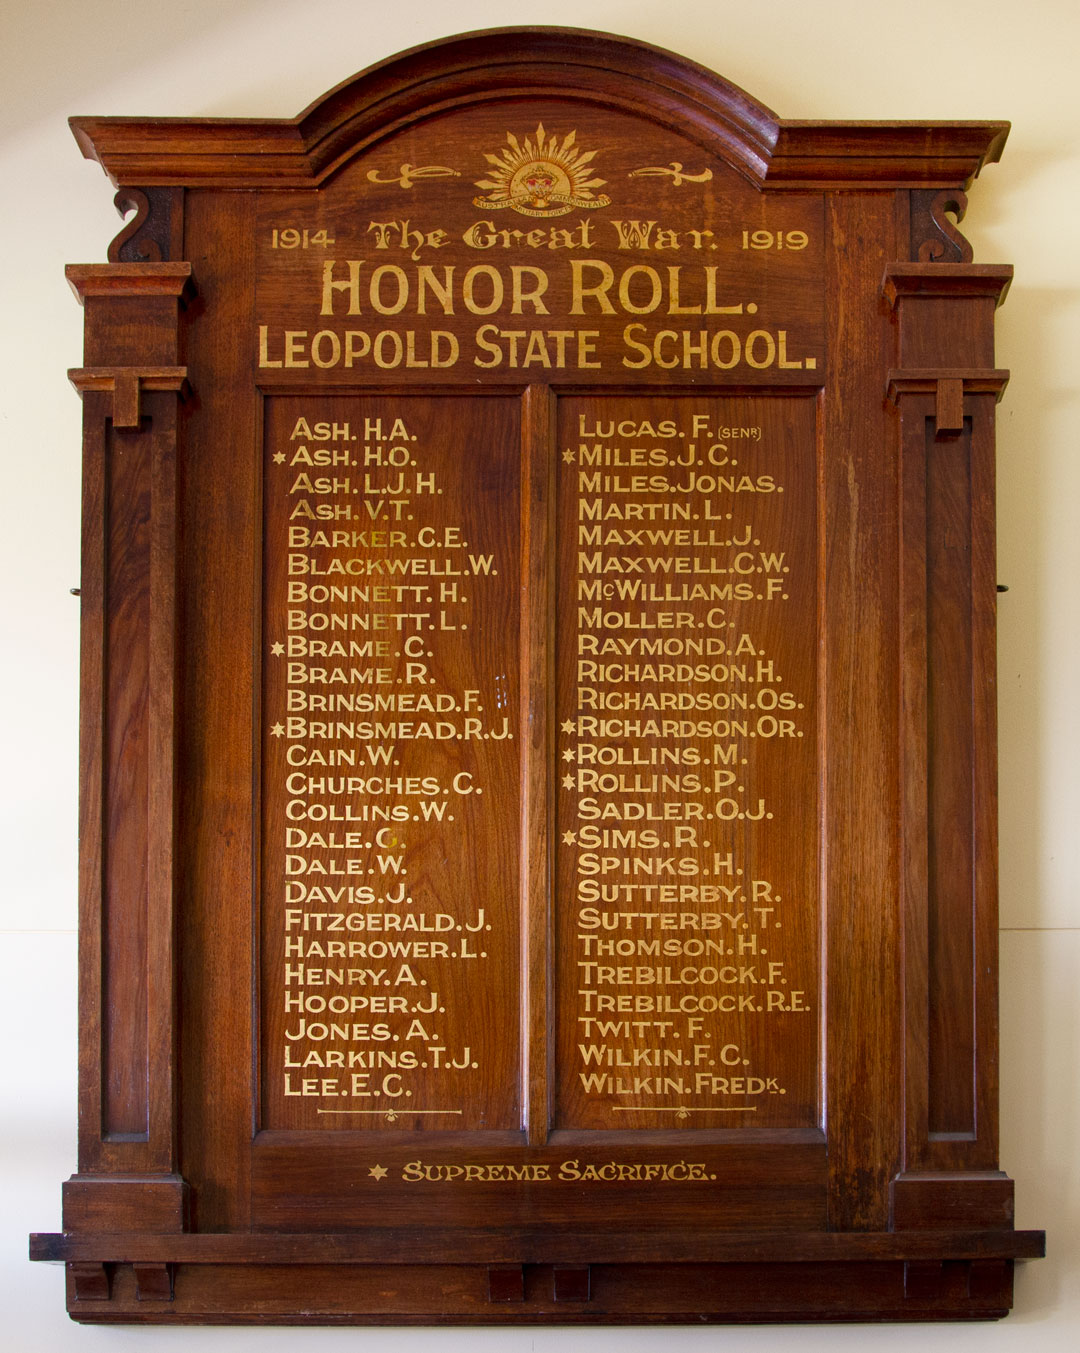 Leopold State School Honor Roll